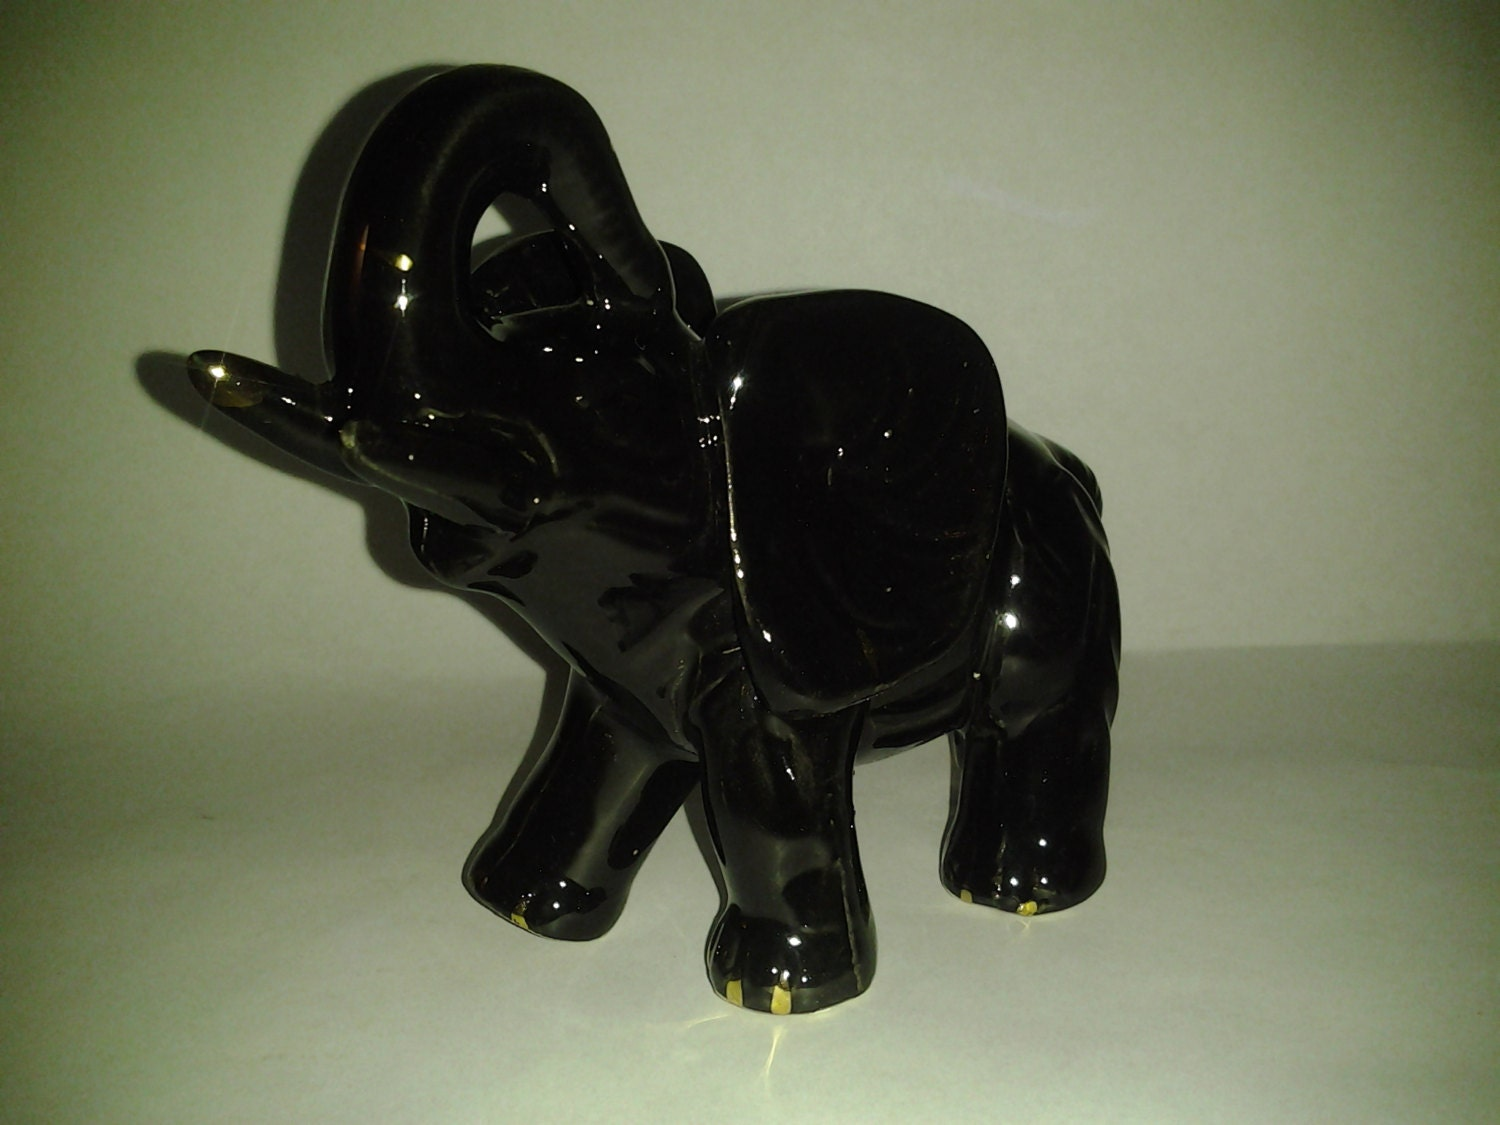 Chinese Porcelain Elephant Figurine A Superb Vintage Chinese